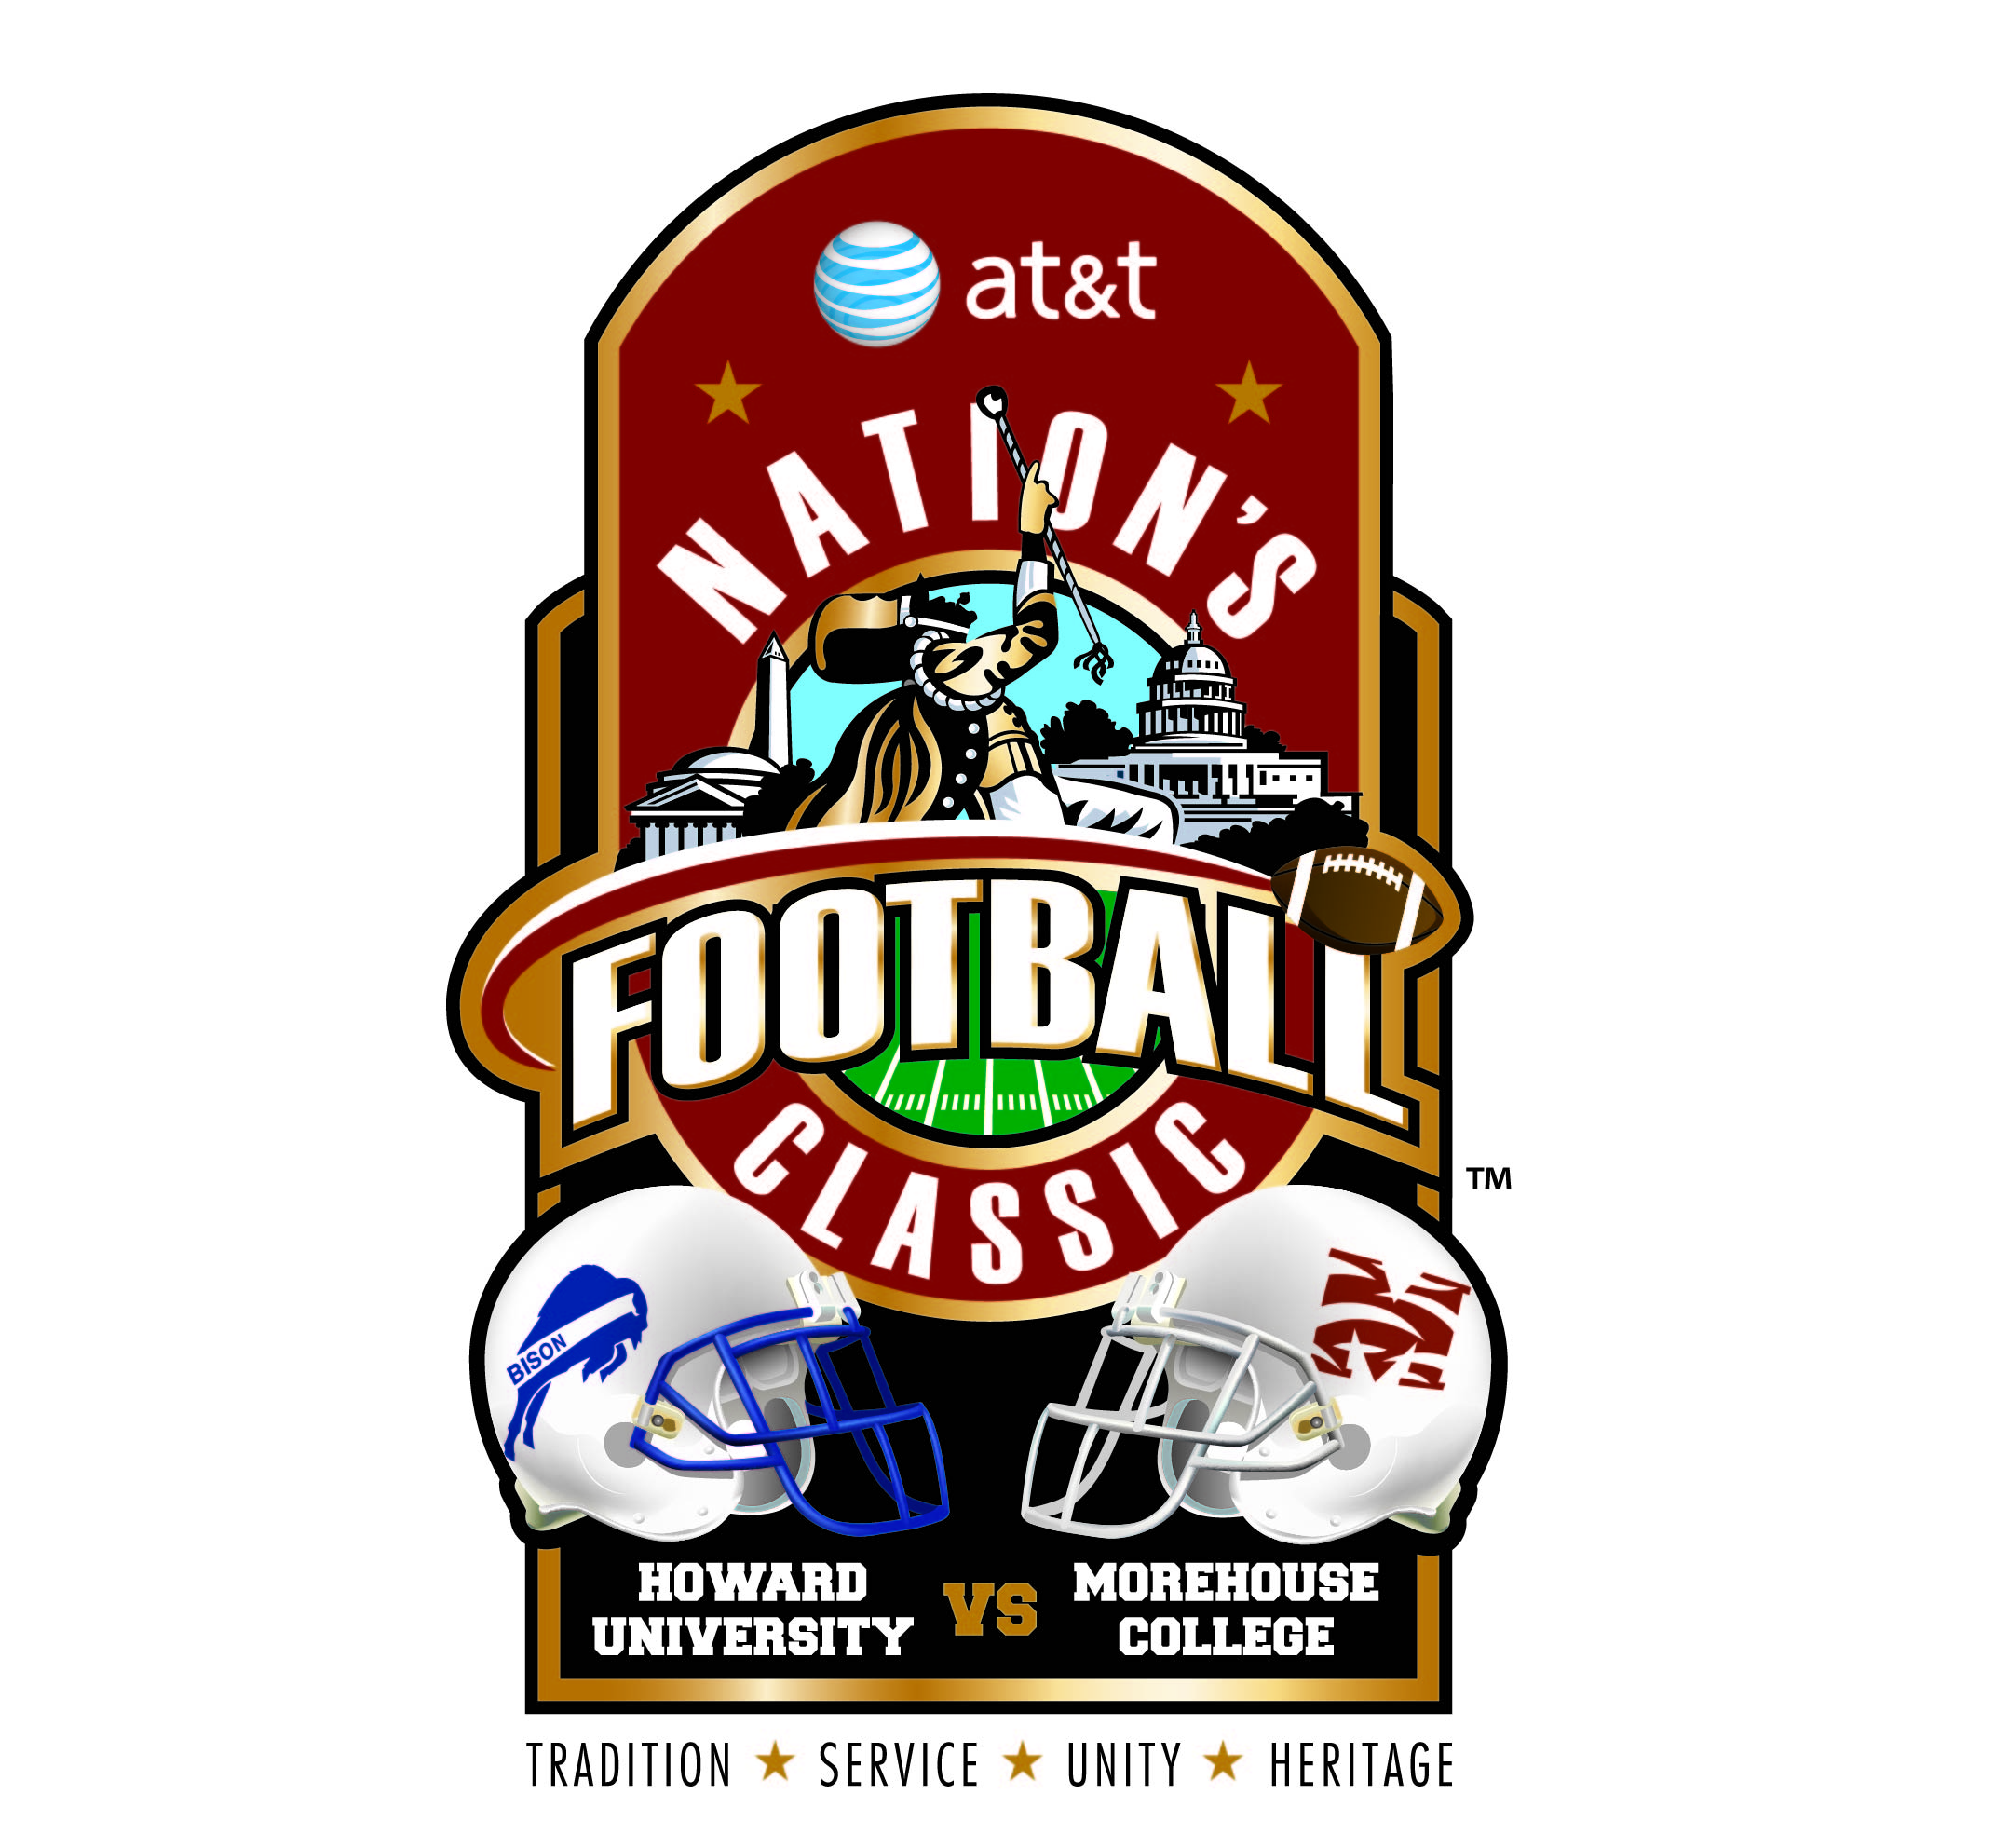 The AT&T Nation's Football Classic�, Howard ...